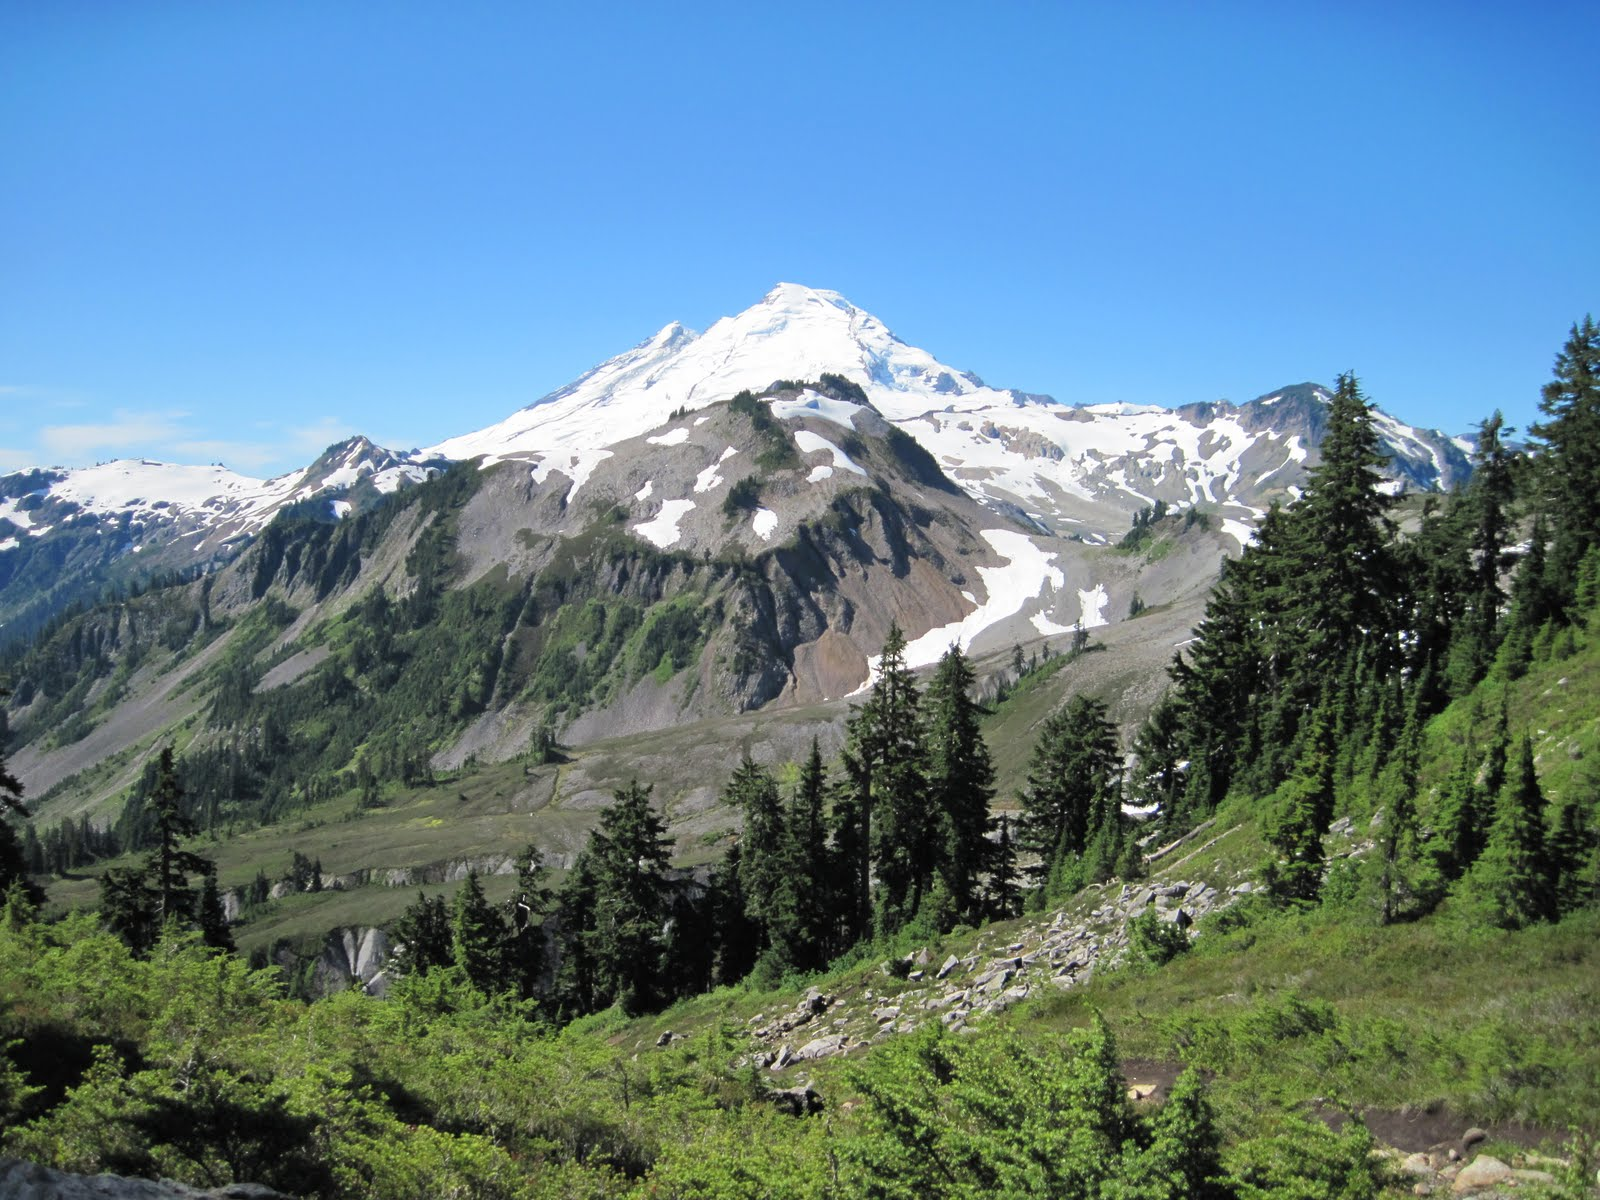 Beth 39 s news hiking table mountain near mt baker wa for Chair 6 mt baker